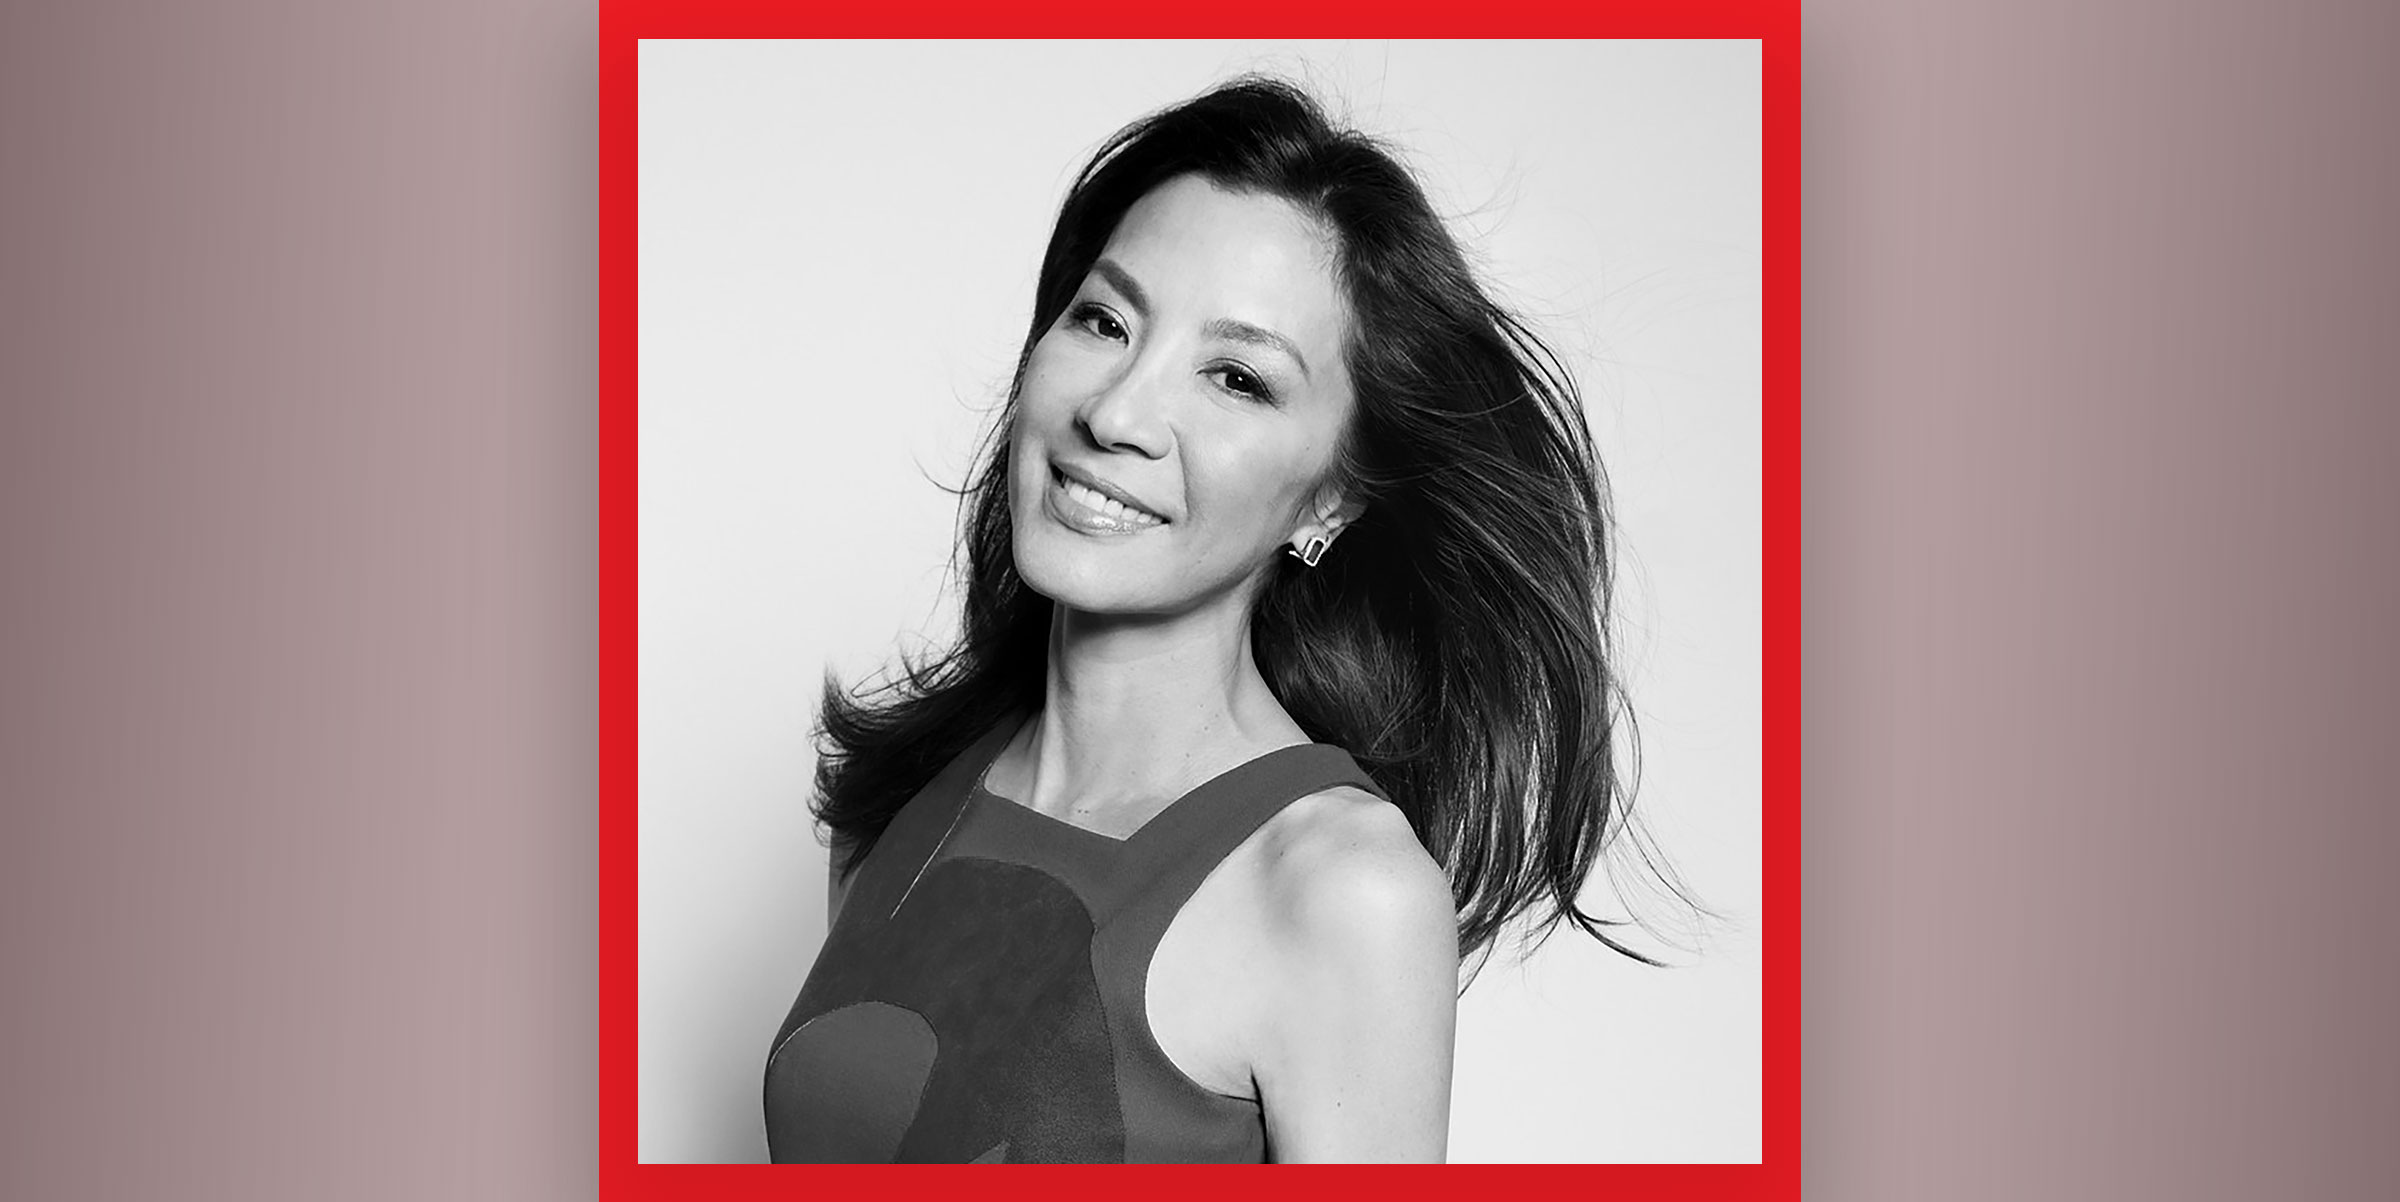 Michelle Yeoh spoke about the importance of the upcoming Asian-led Marvel movie Shang-Chi and the Legend of the Ten Rings during her appearance at the TIME100 Talks on Tuesday, Aug. 18, 2020.